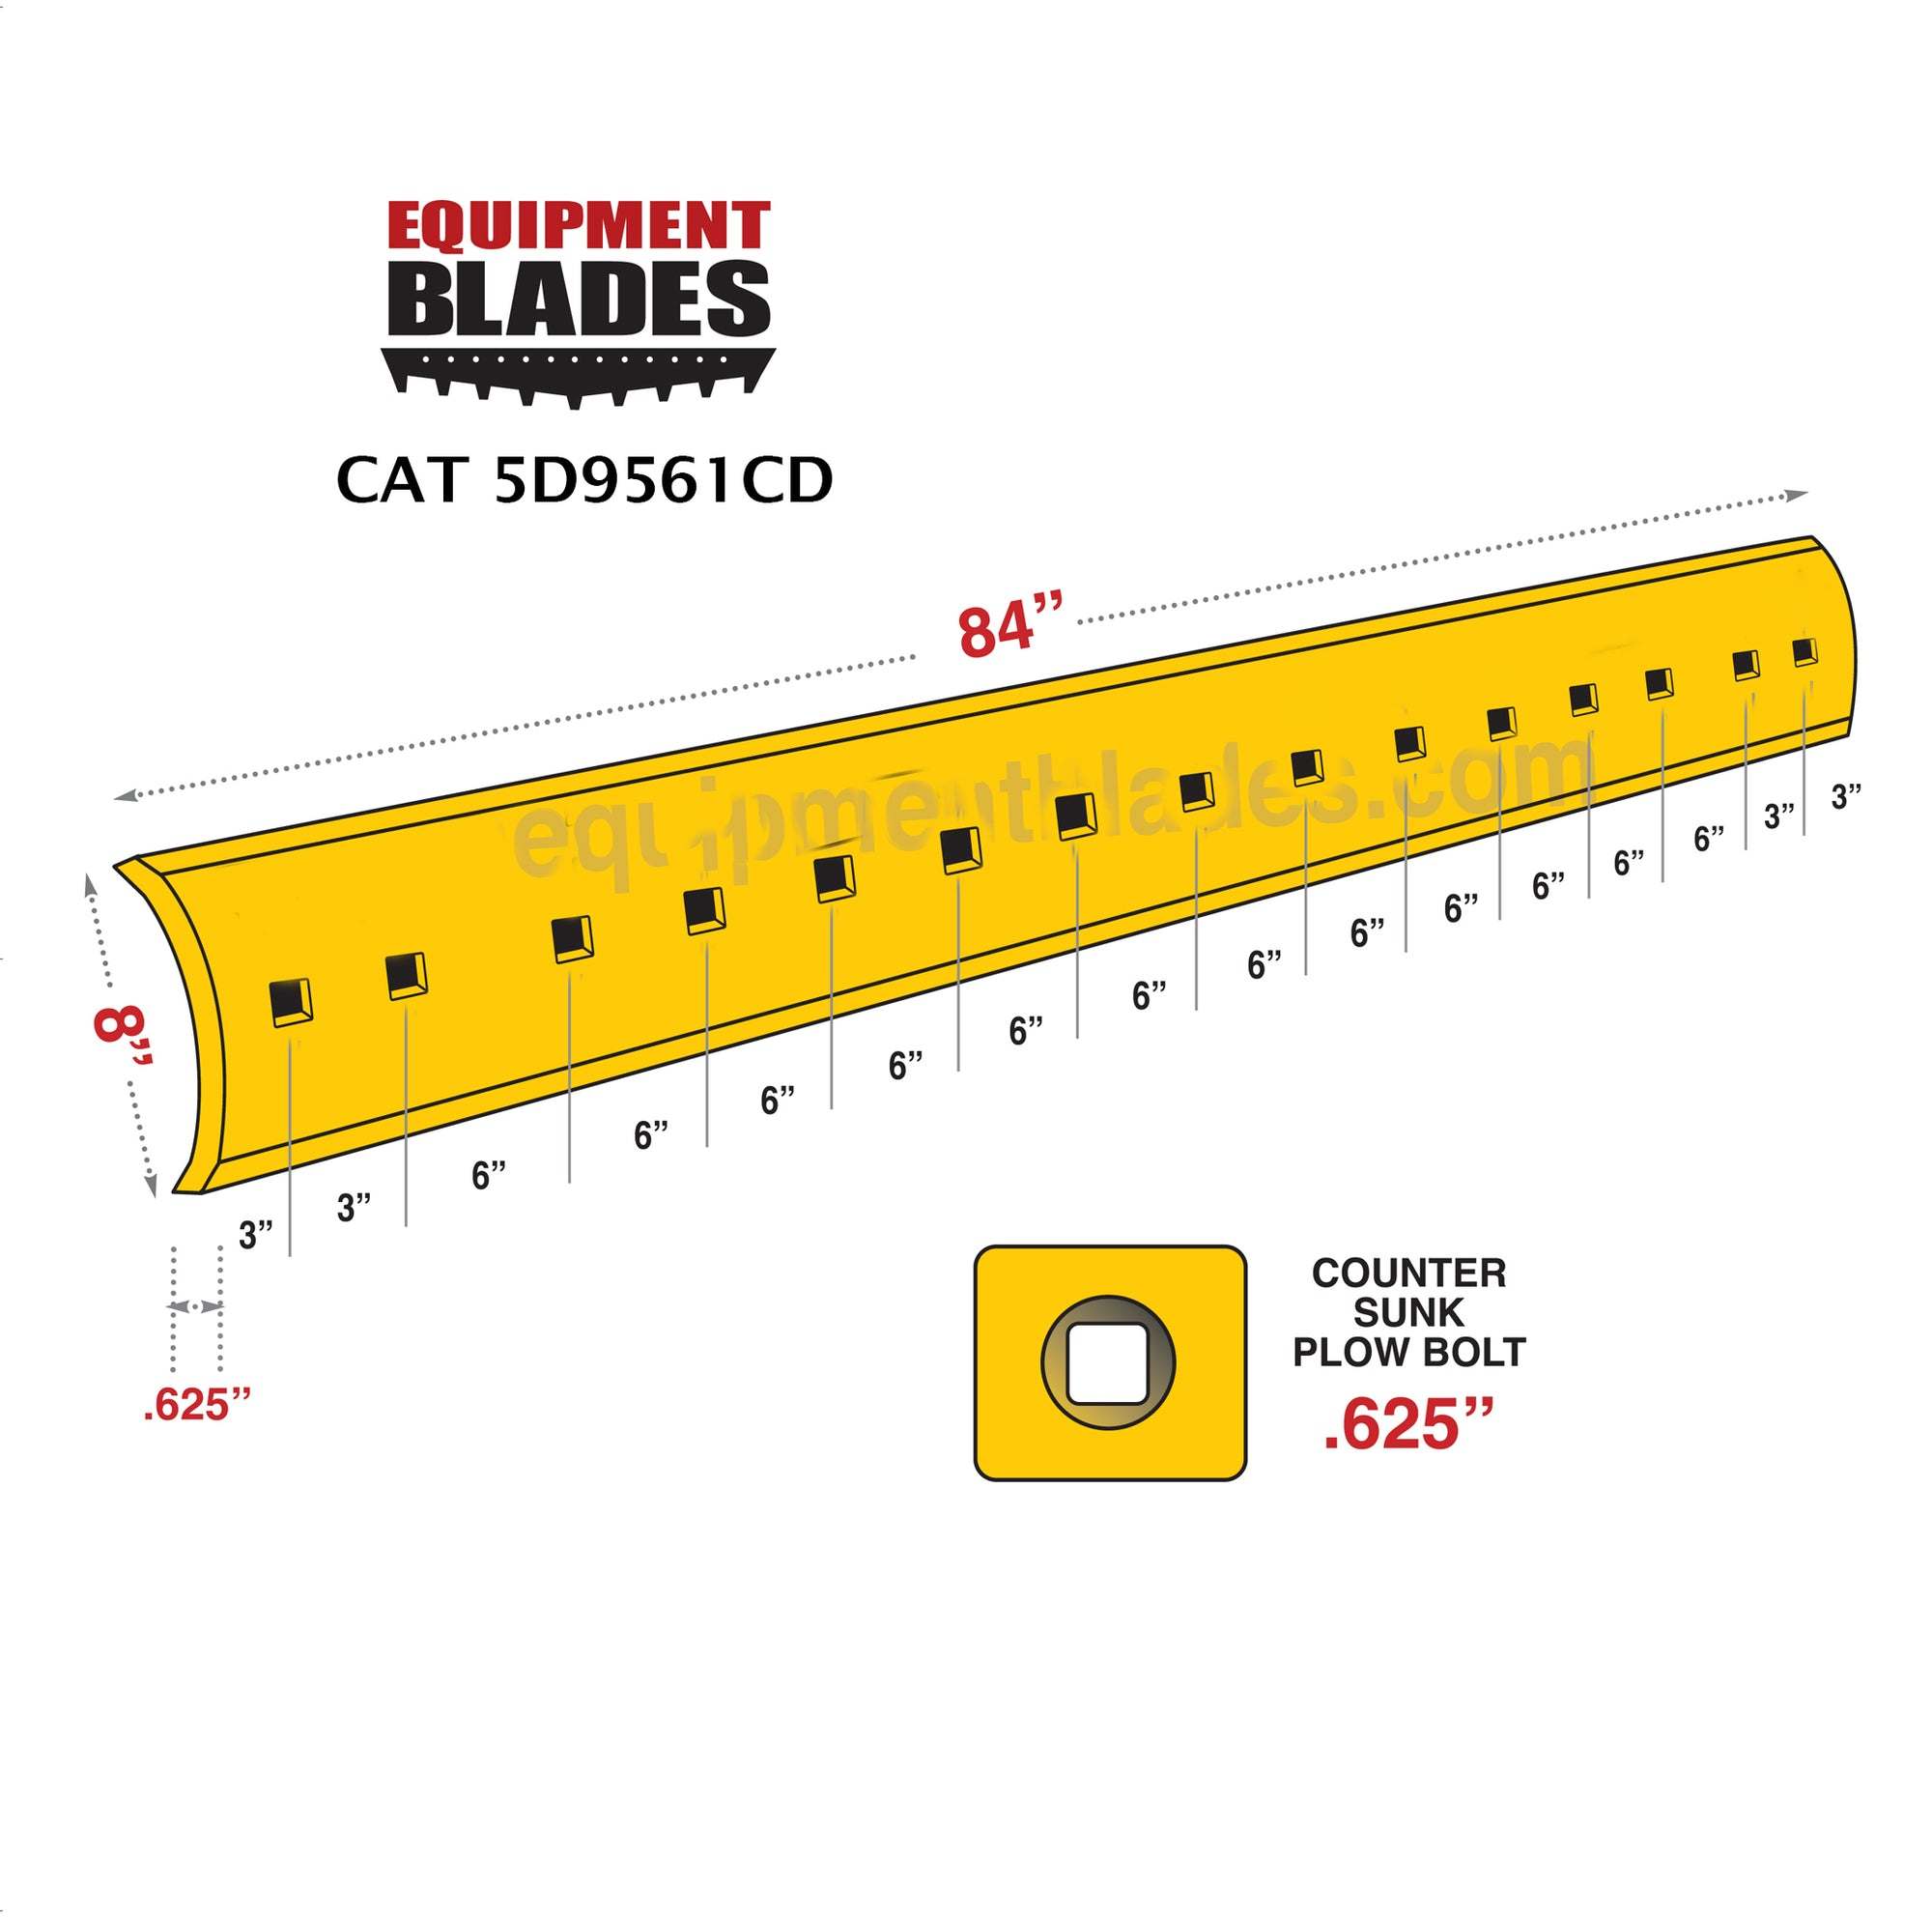 Cat 5D9561CD-Equipment Blades Inc-Equipment Blades Inc